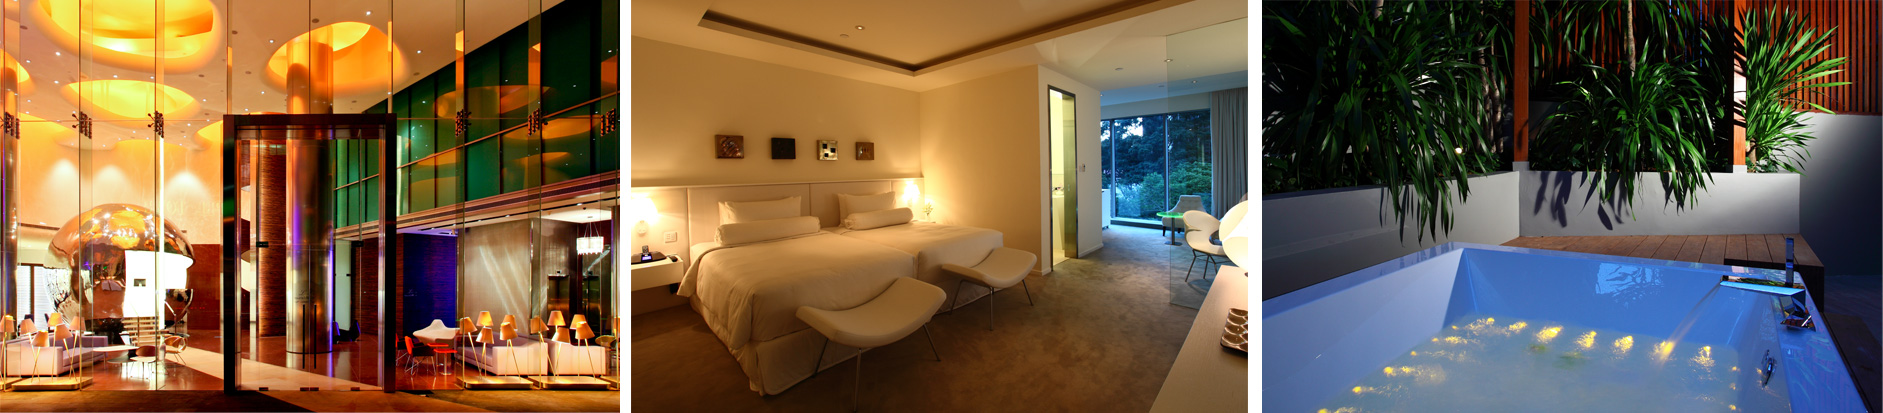 klapsons - The Boutique Hotel Singapore